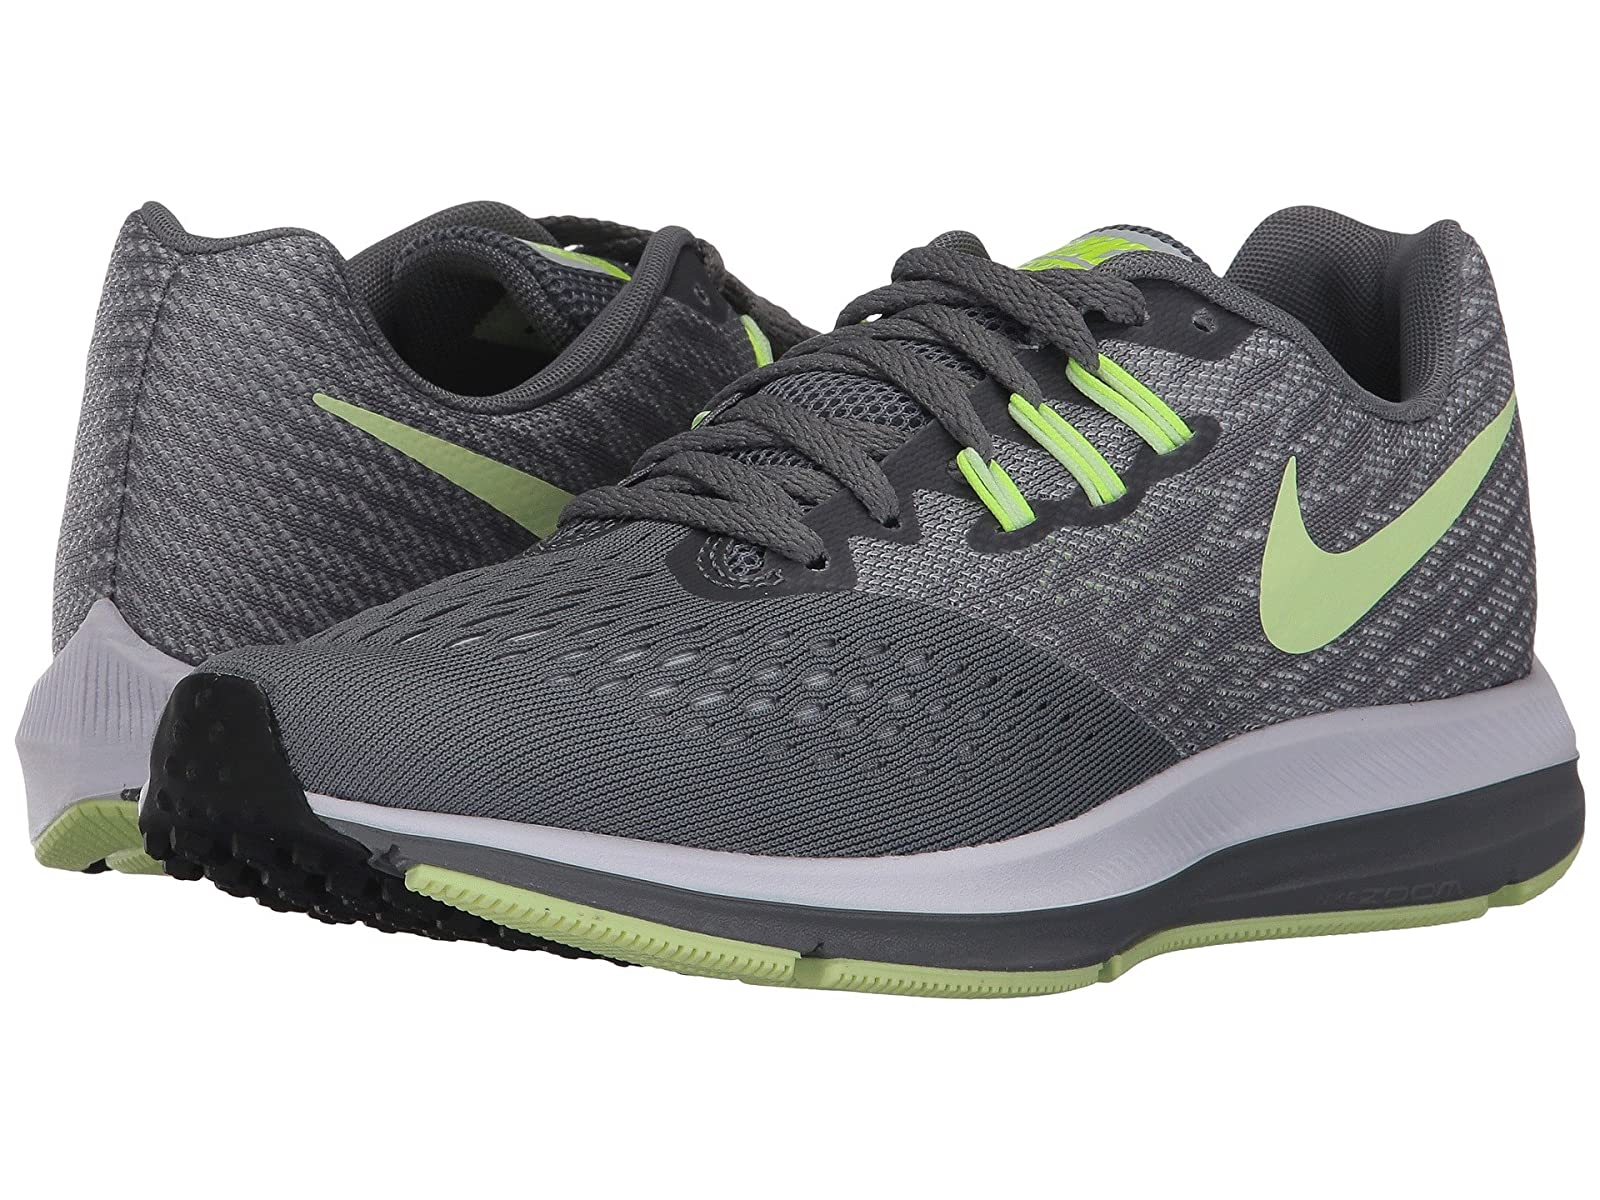 Man's/Woman's 4 - Nike Air Zoom Winflo 4 Man's/Woman's  - Low cost 6a5ec0